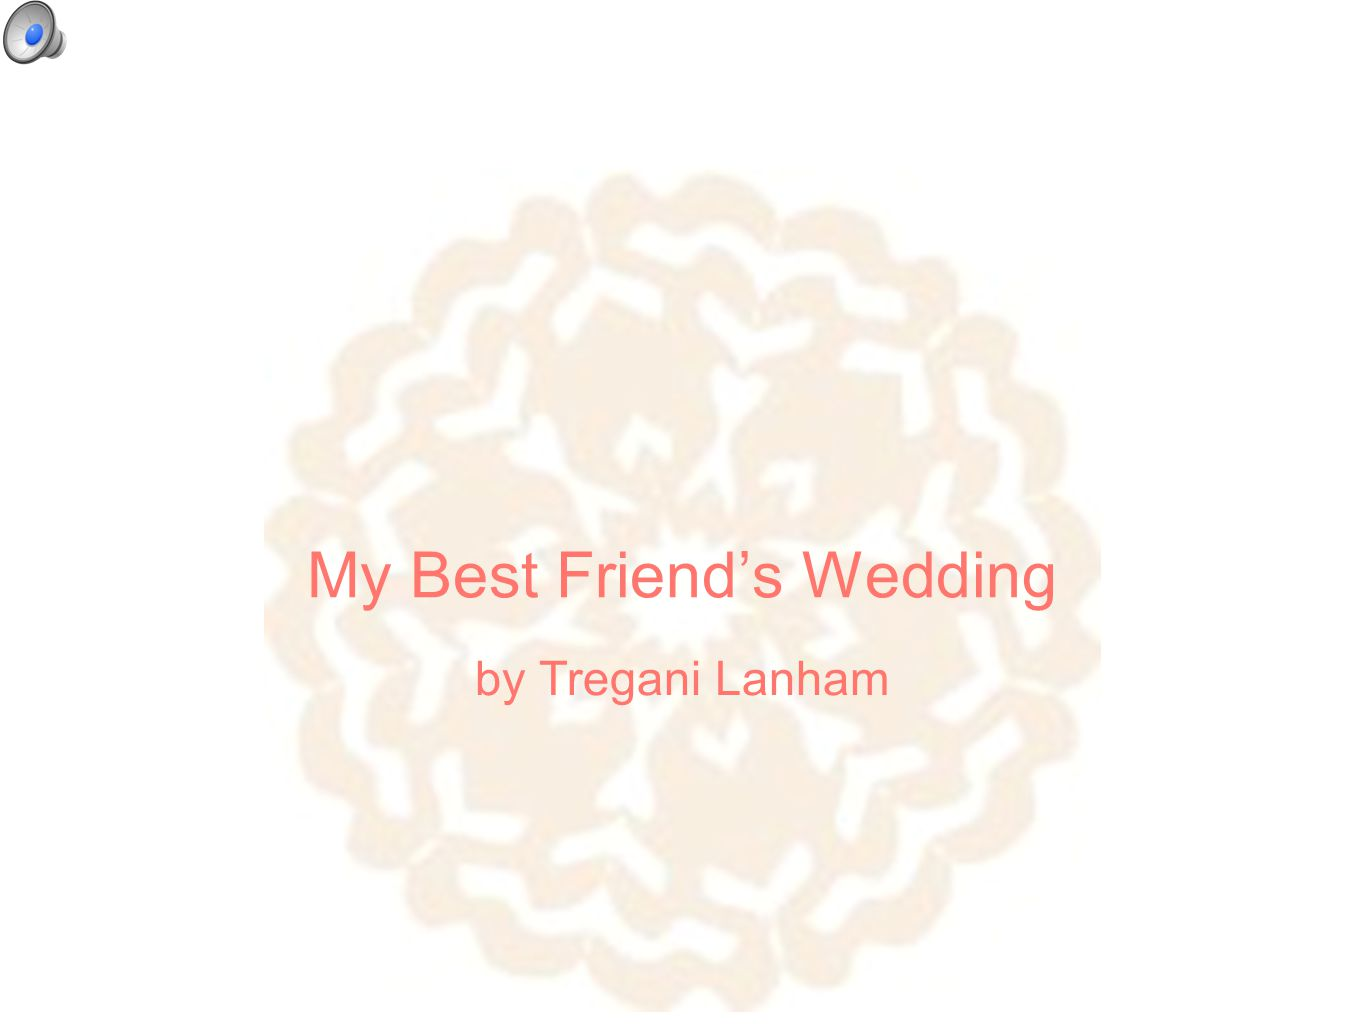 My Best Friend's Wedding by Tregani Lanham